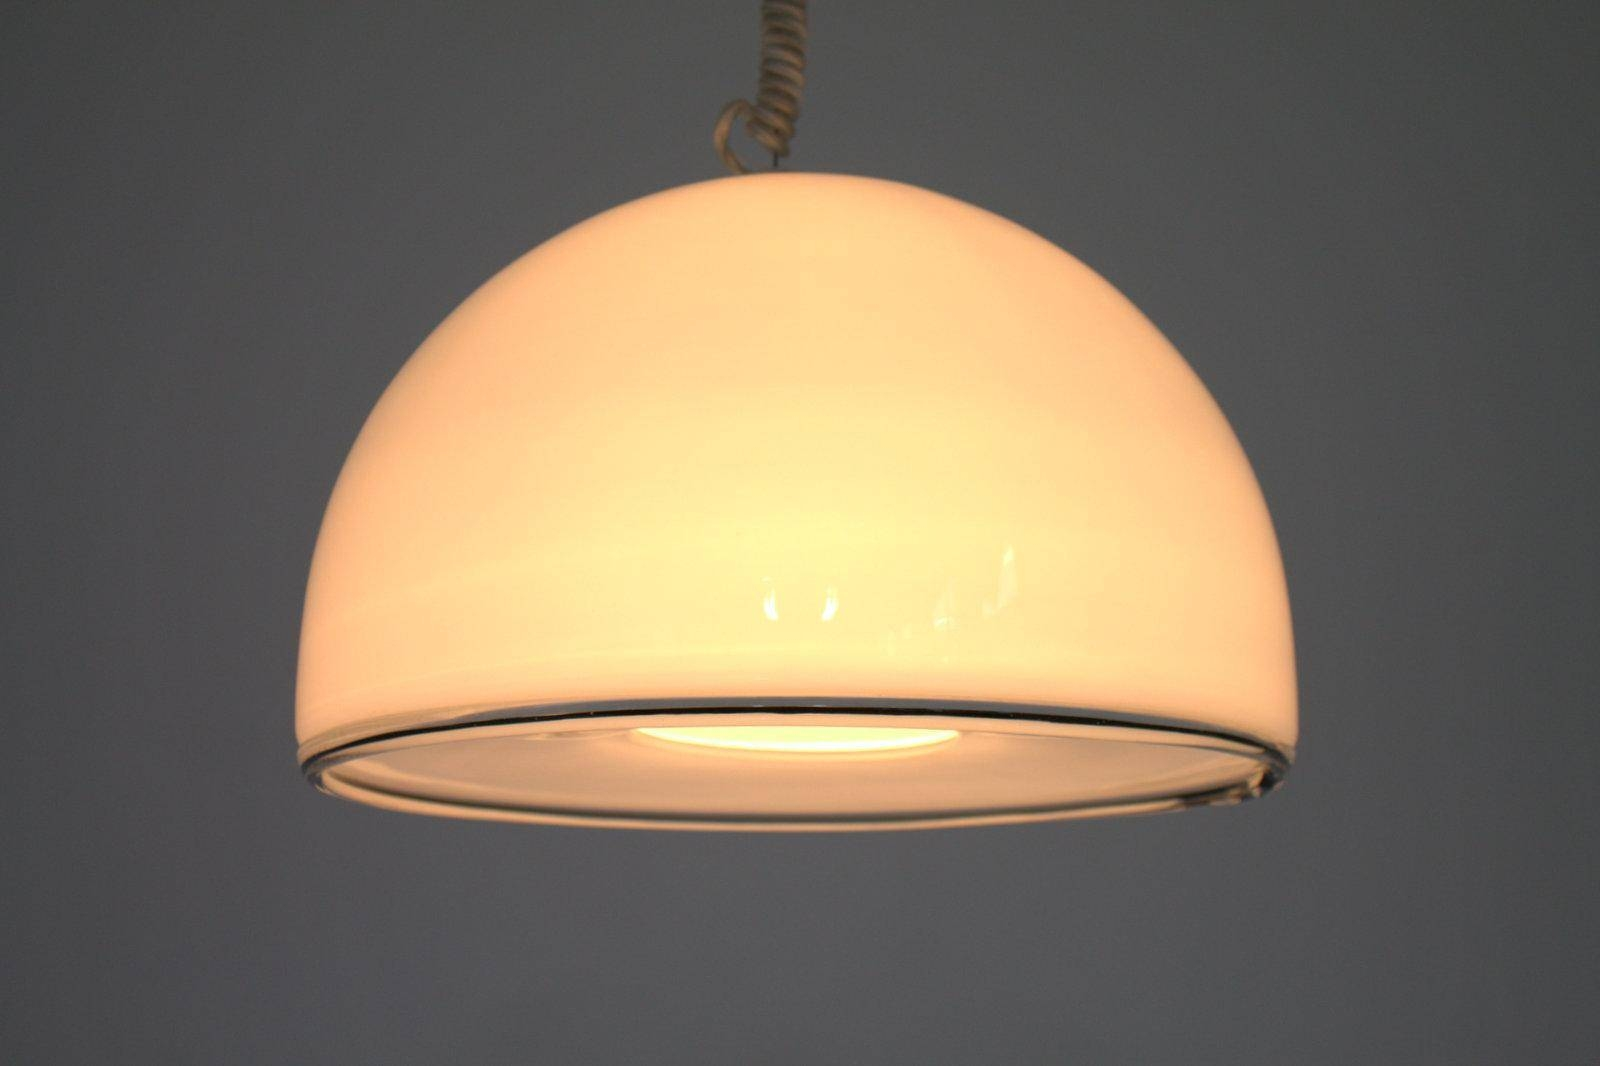 Murano Glass Pendant Lamp From Vetri, 1980S For Sale At Pamono intended for Murano Glass Lighting Pendants (Image 8 of 15)